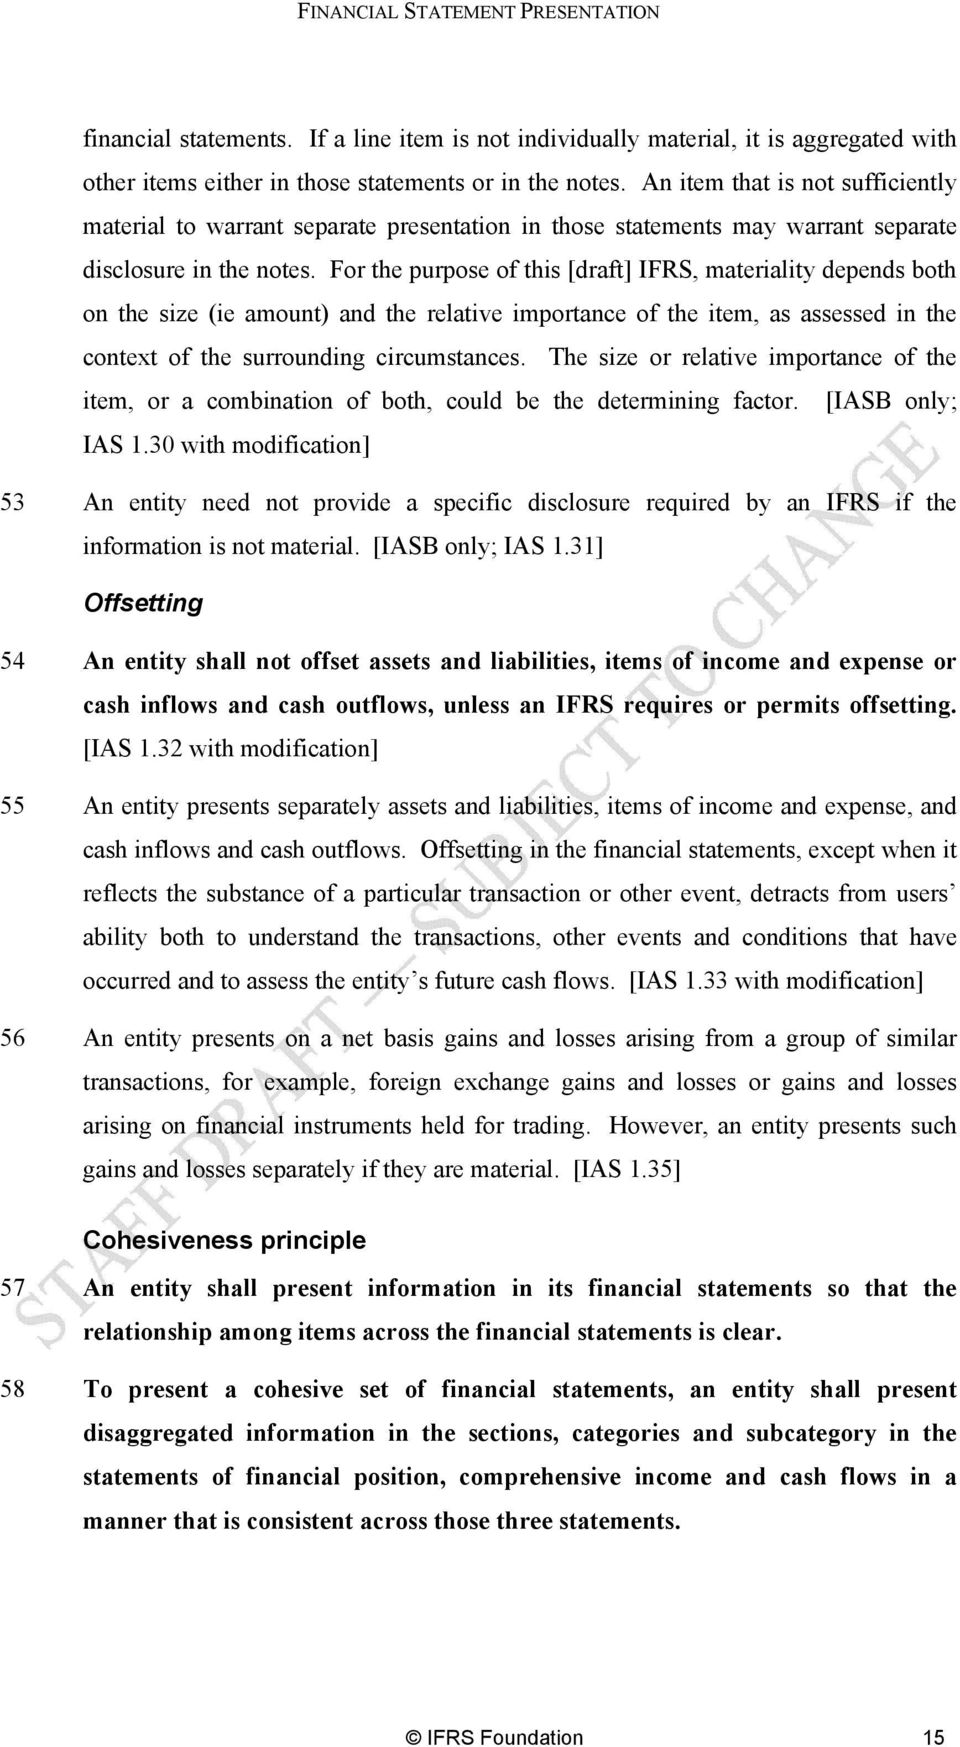 For the purpose of this [draft] IFRS, materiality depends both on the size (ie amount) and the relative importance of the item, as assessed in the context of the surrounding circumstances.